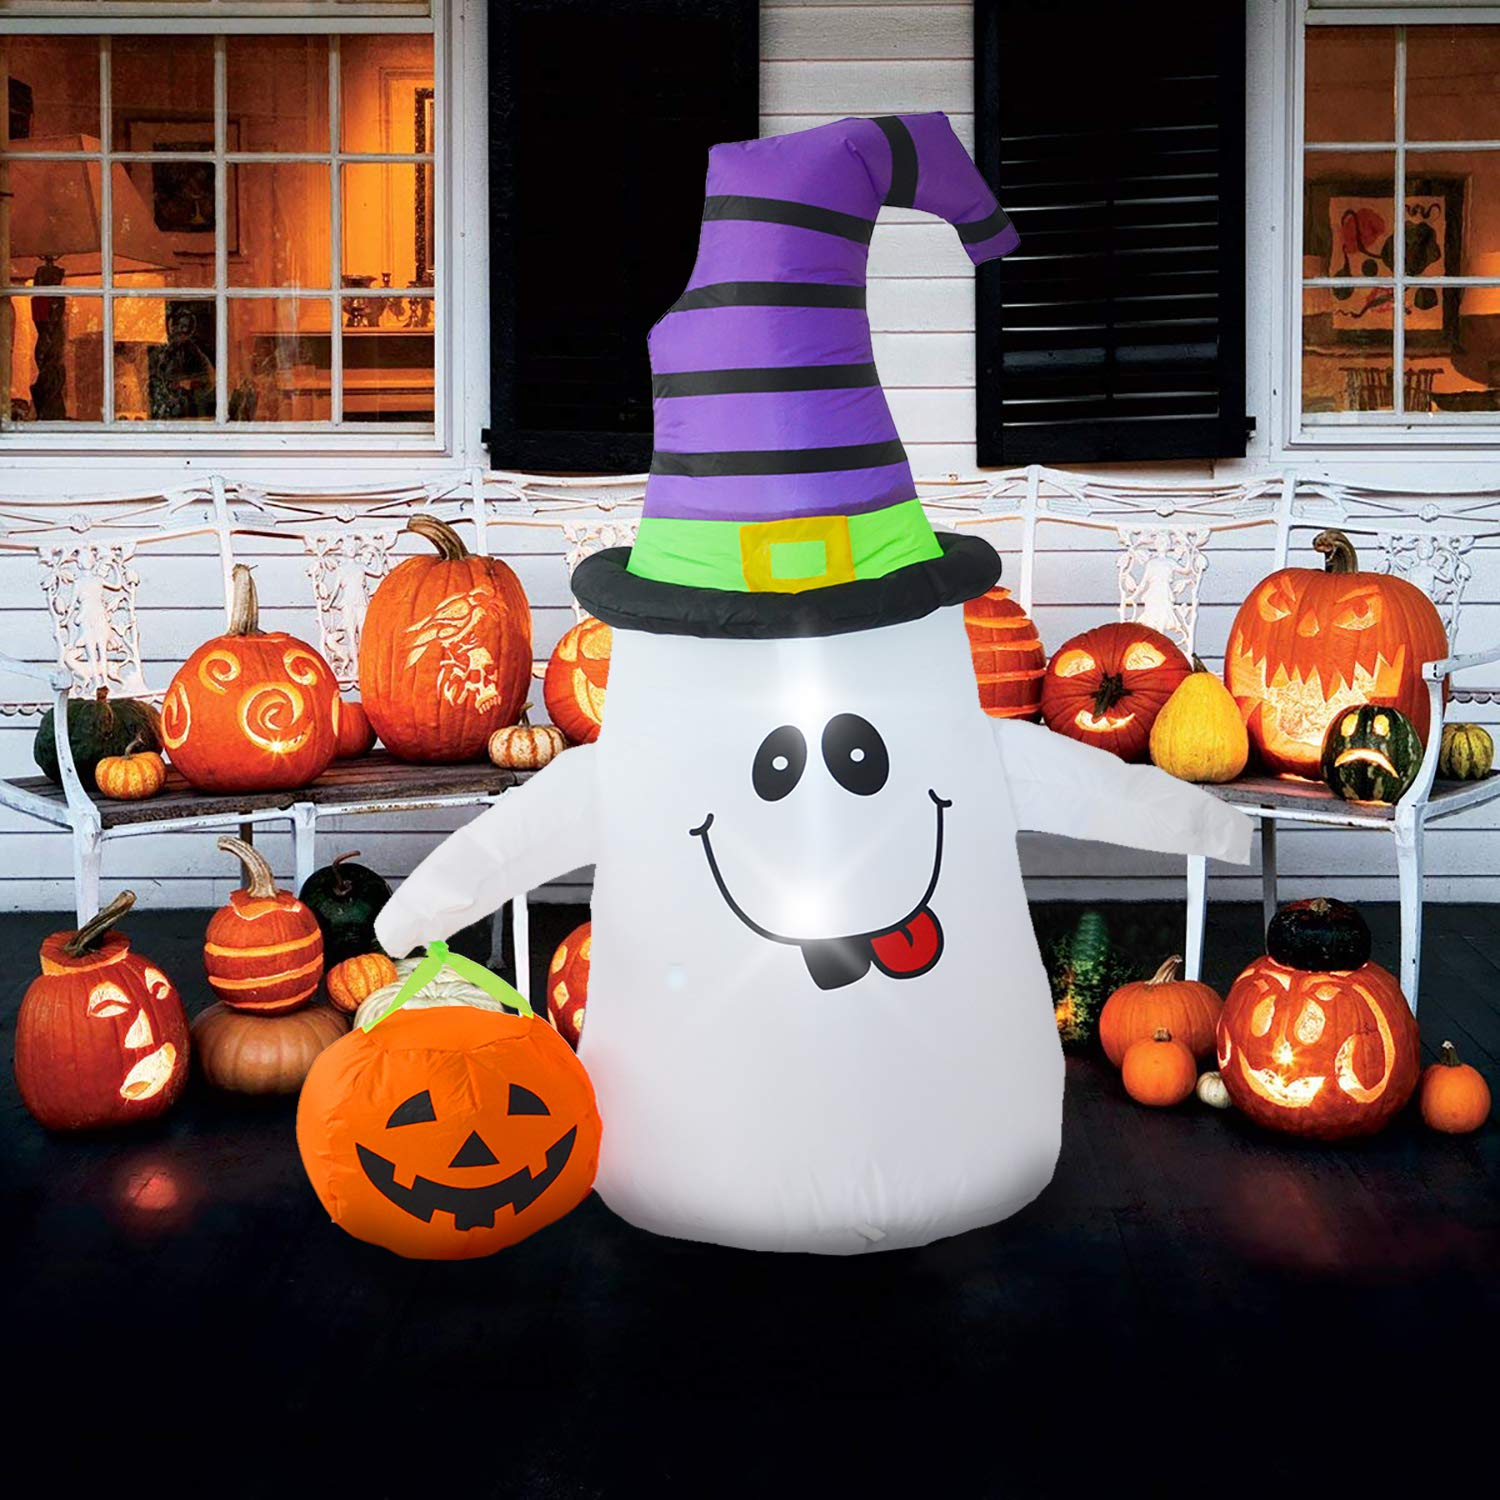 DIGIANT 4 Foot Halloween Inflatable Air Blown Ghost with Jack-O-Lantern Pumpkin/Witch Hat Lighted for Home Yard Garden Indoor and Outdoor Decorations